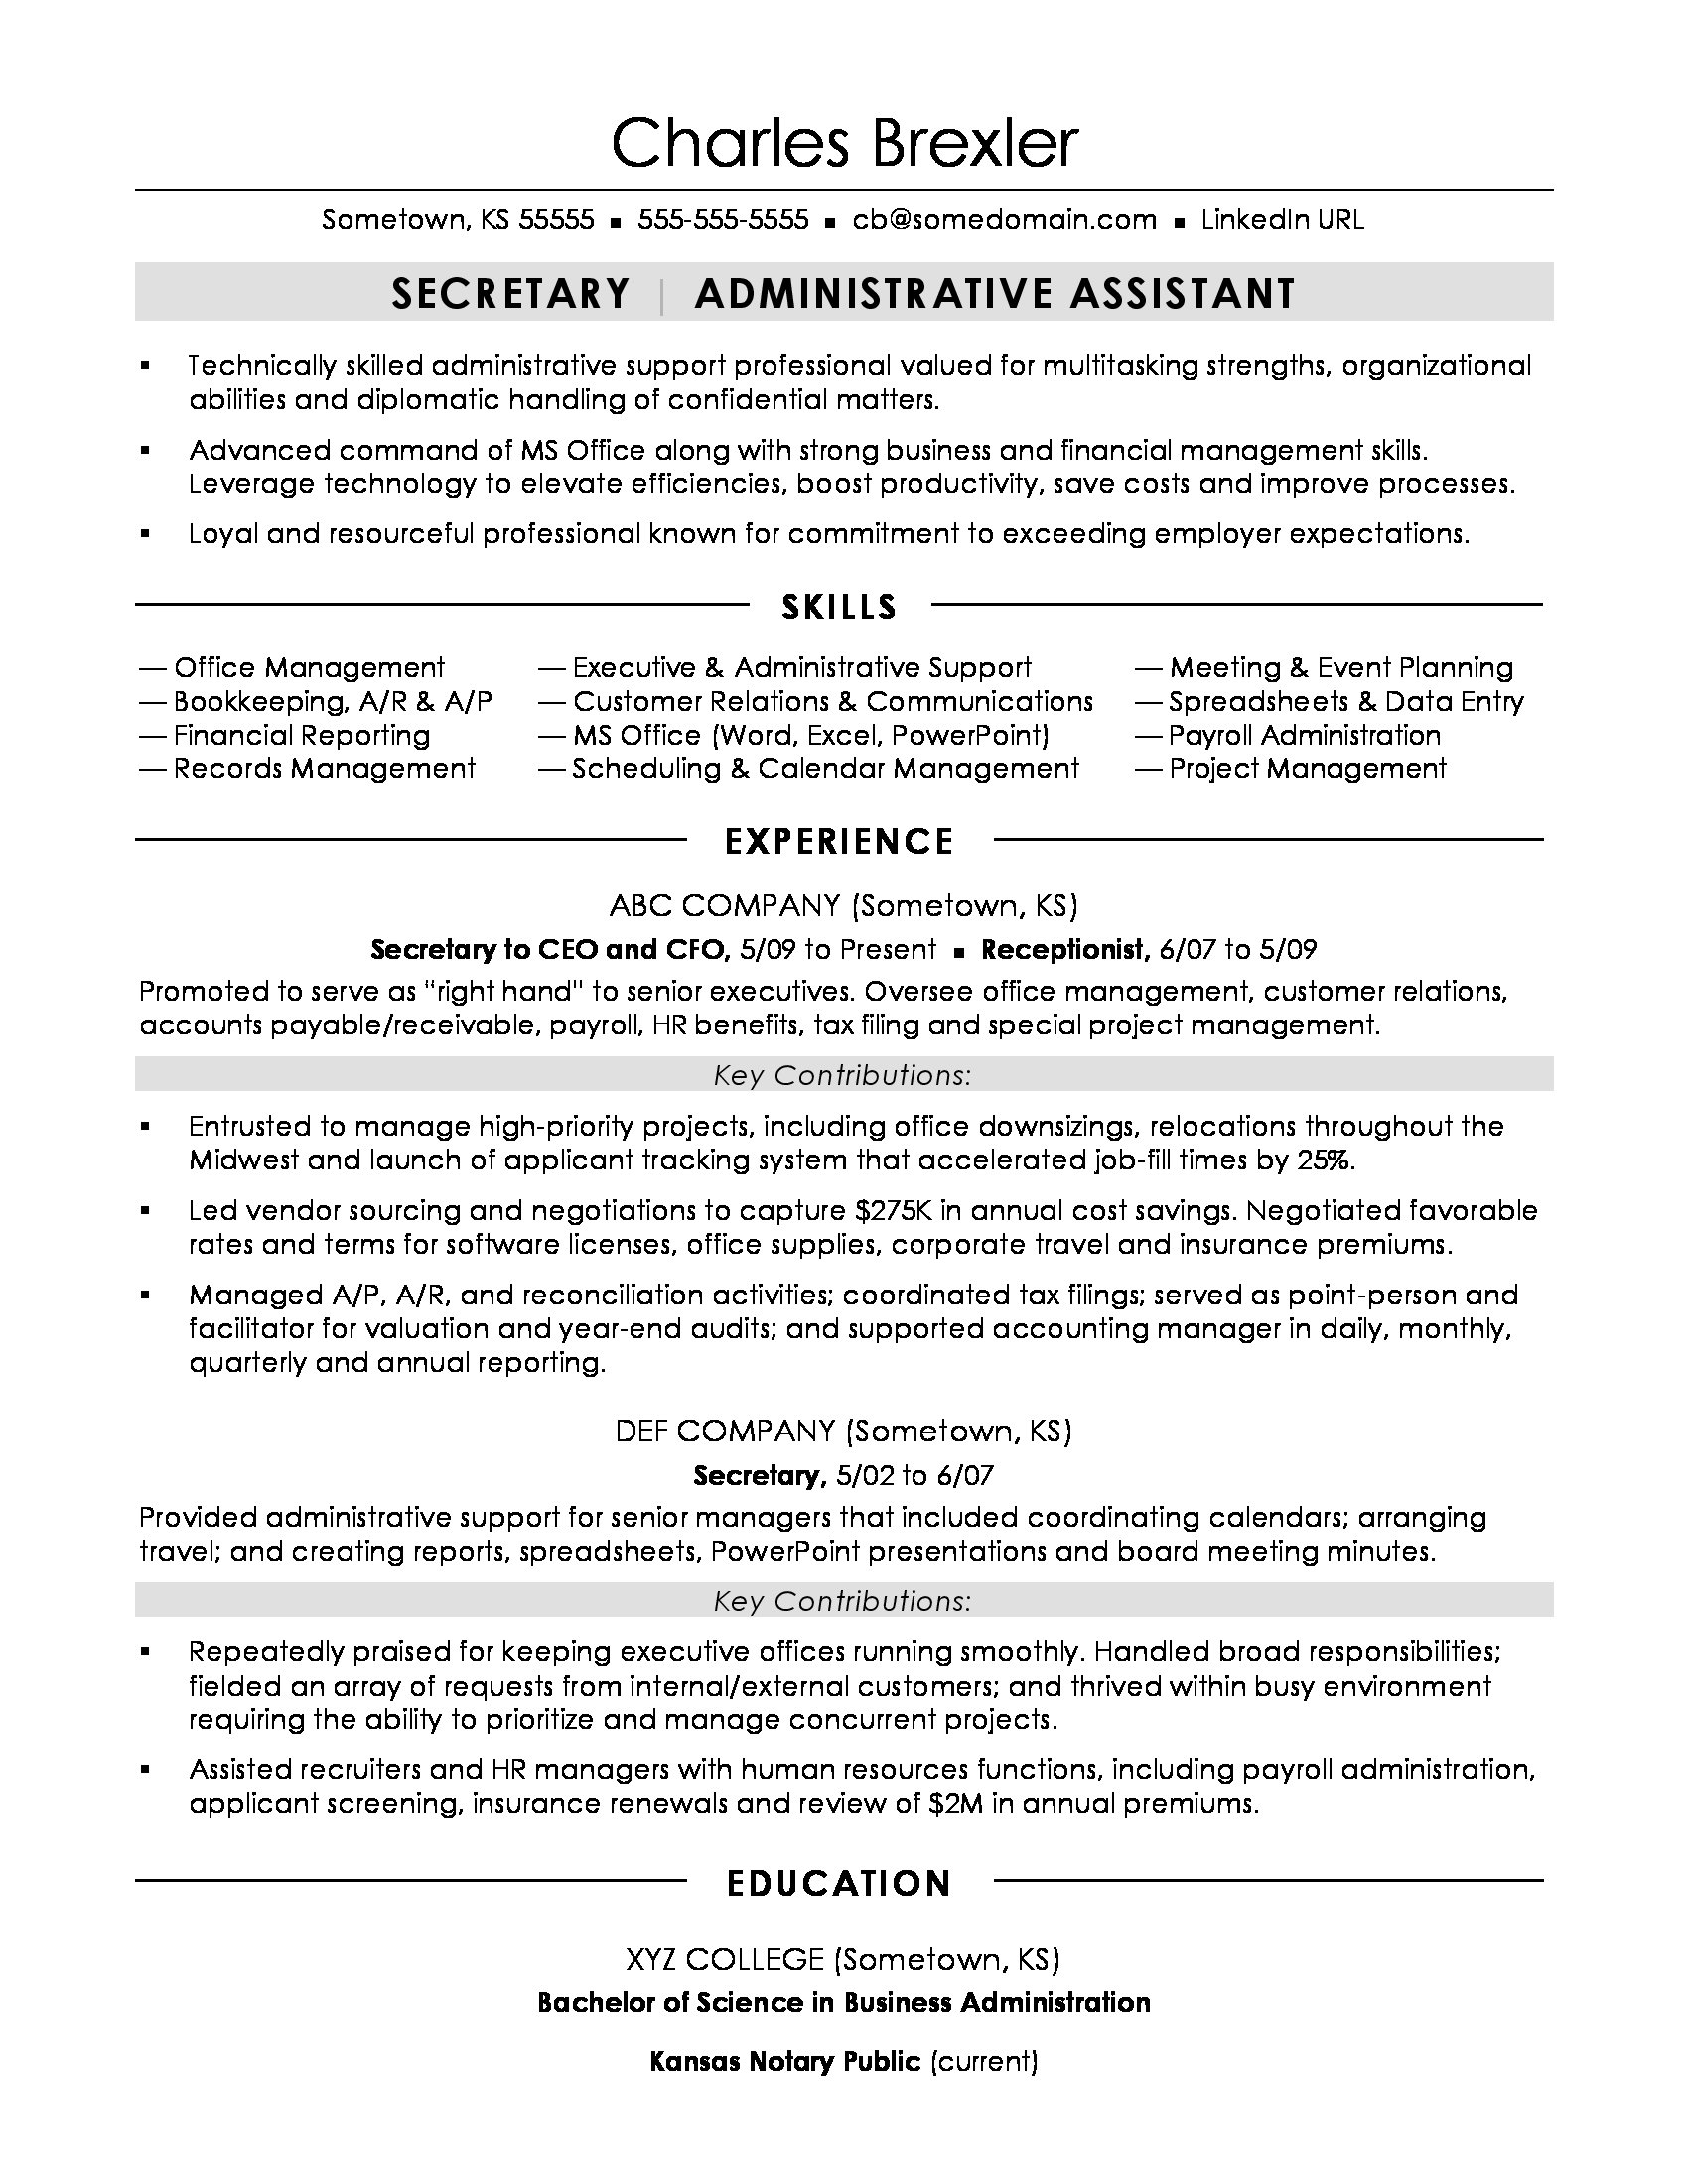 Secretary Resume Sample  Resume Microsoft Office Skills